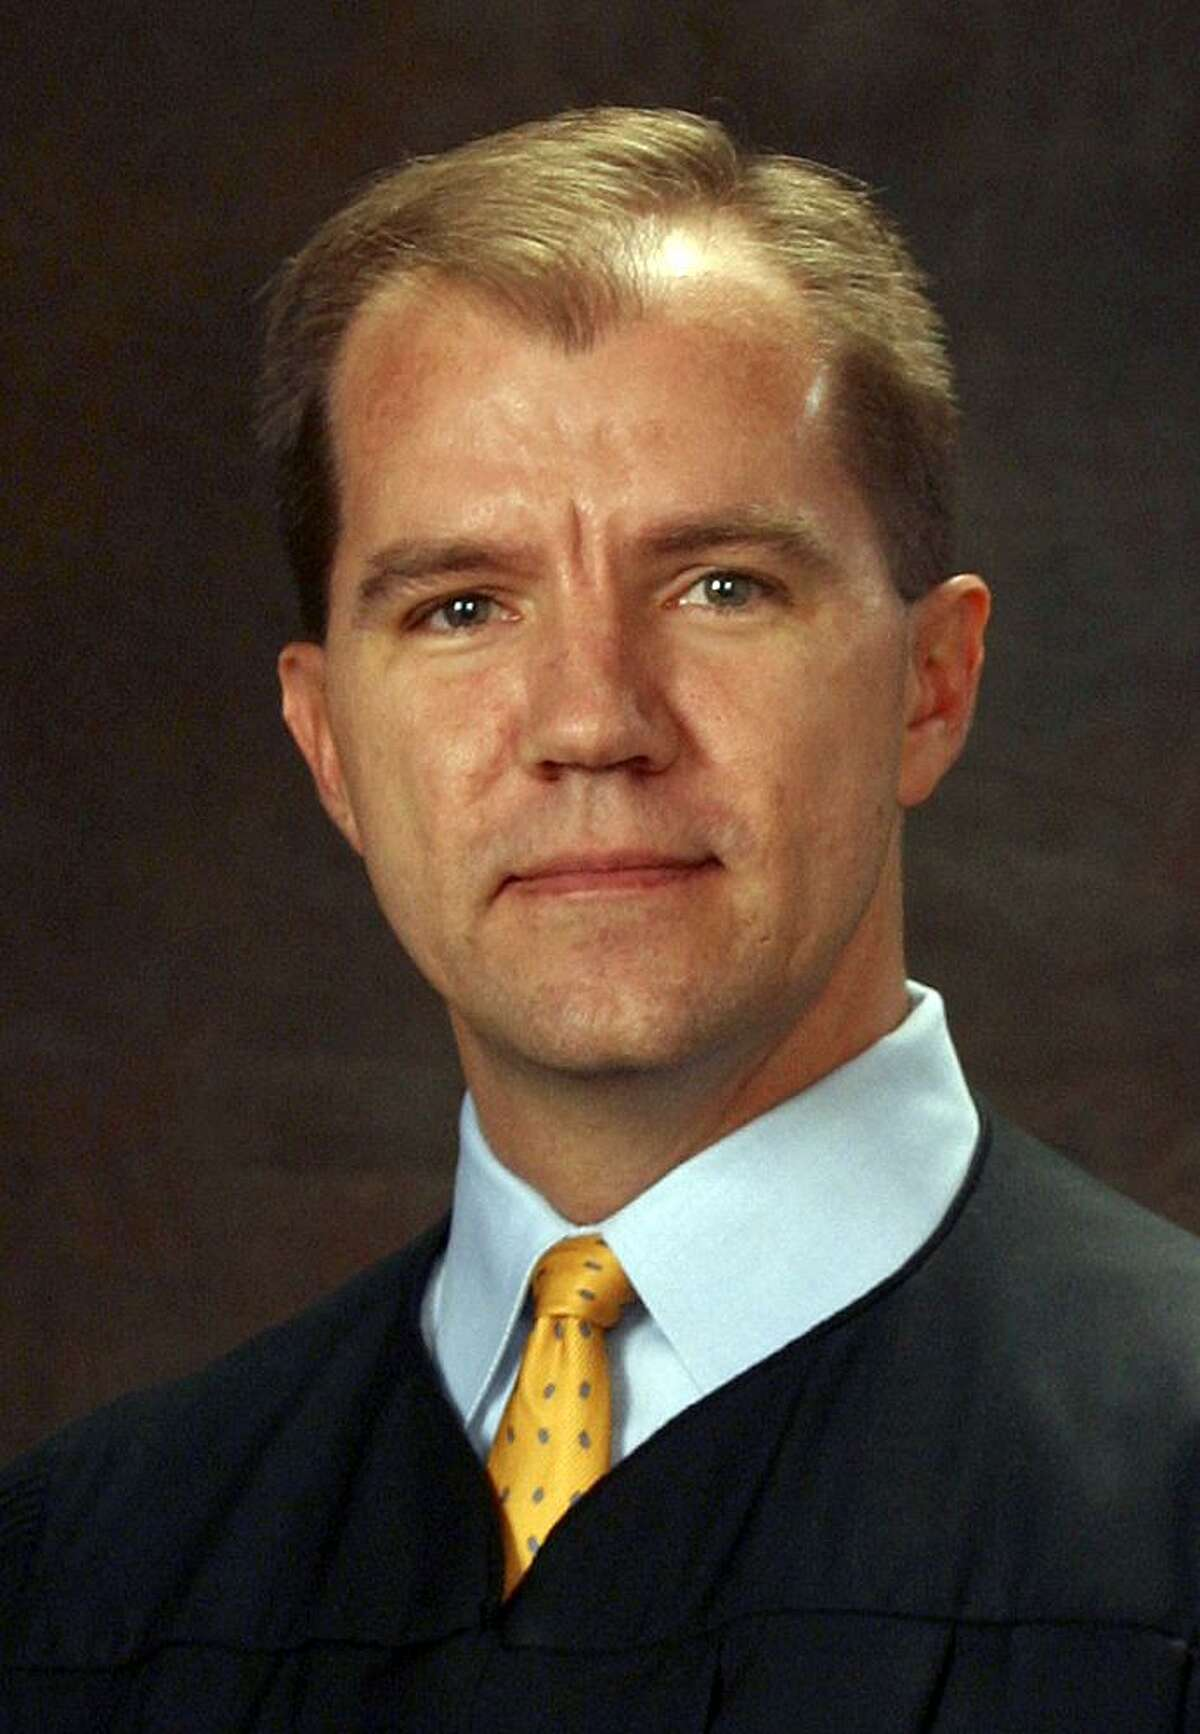 Texas Supreme Court Justice Don R. Willett has been nominated by President Donald Trump to serve on the 5th U.S. Circuit Court of Appeals.